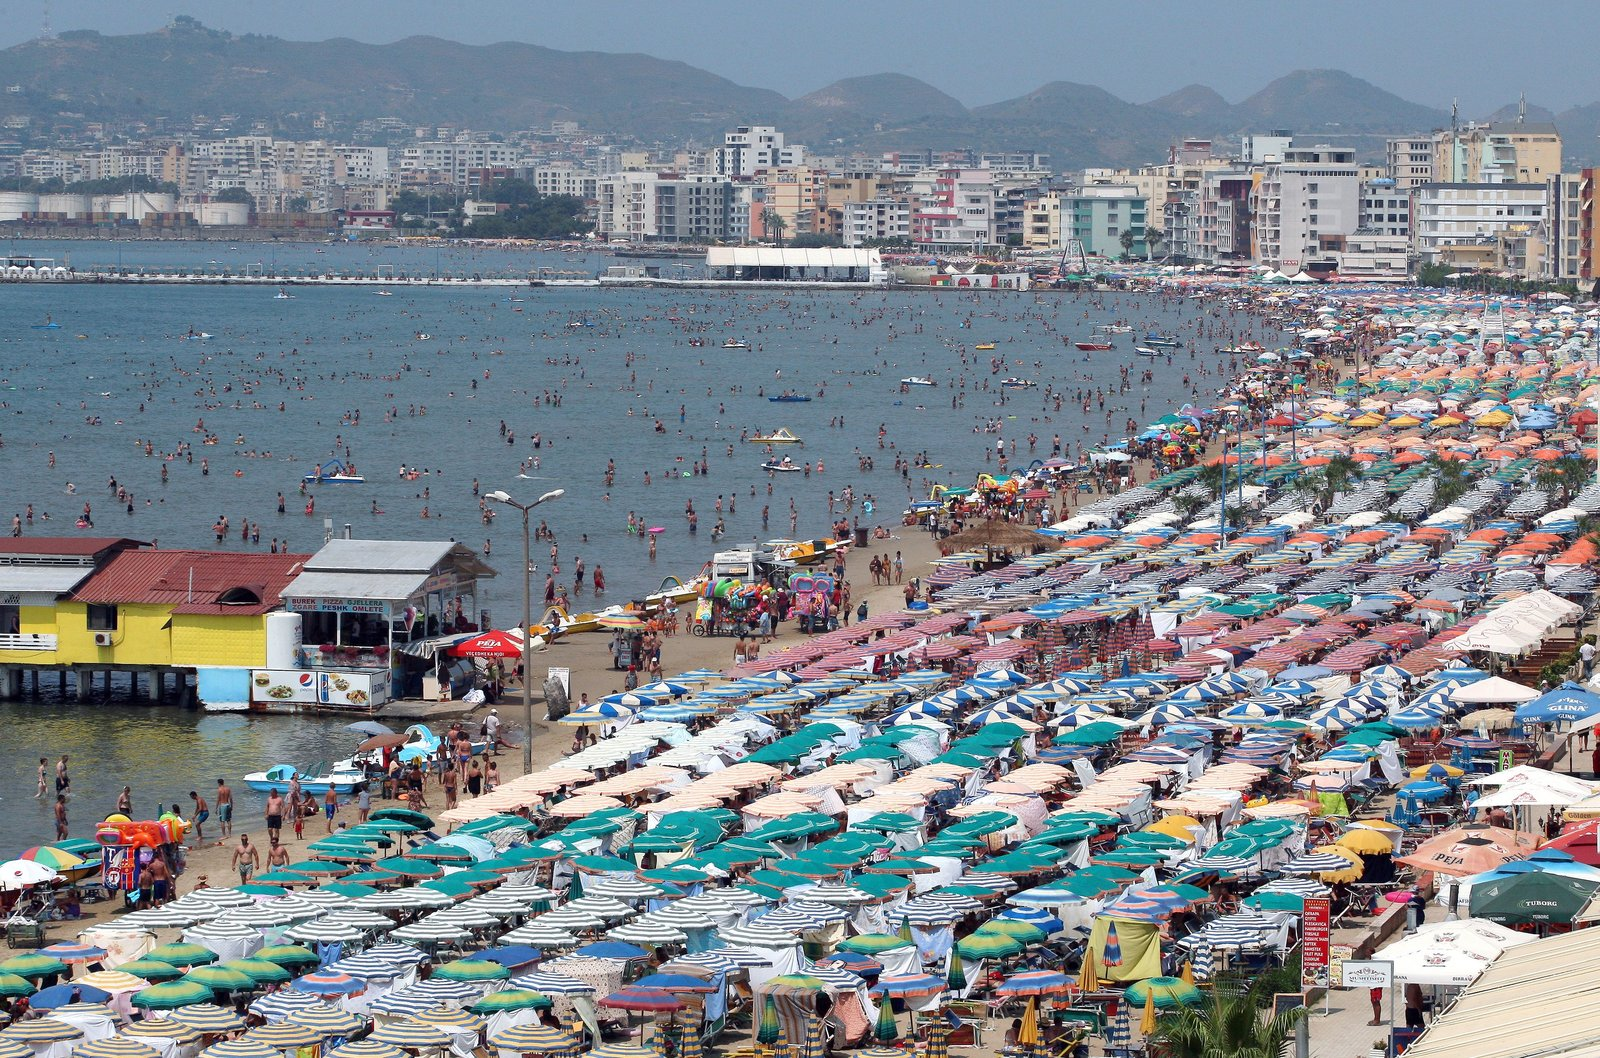 Flocking to the beach during an Albanian heat wave